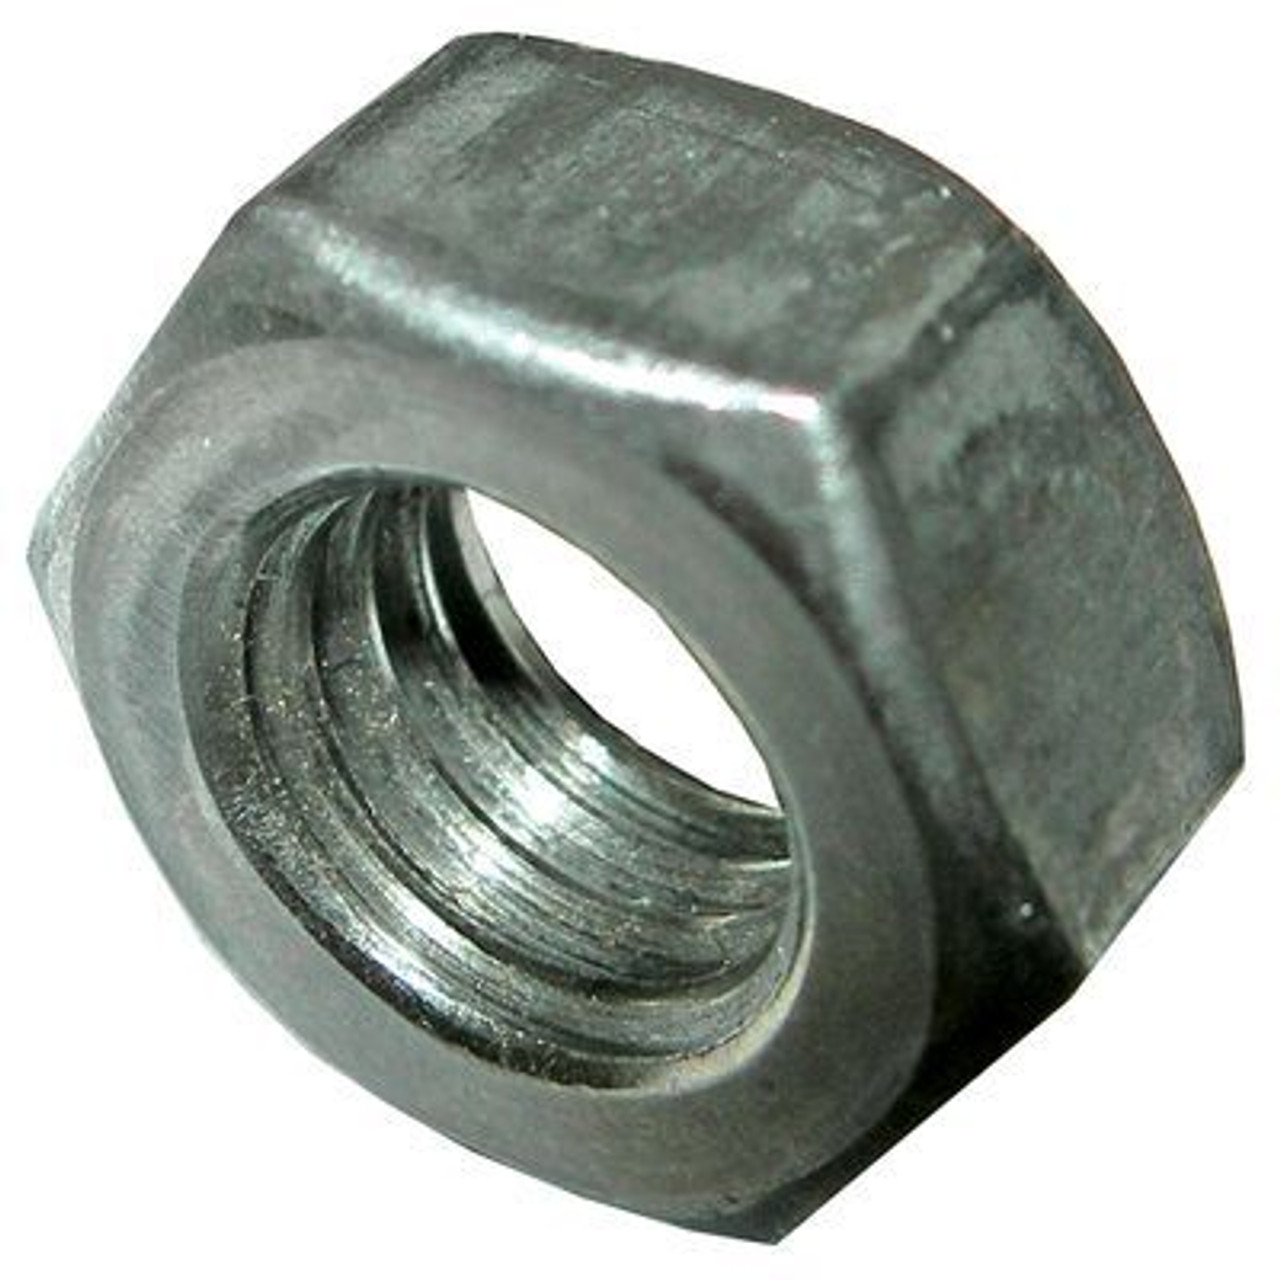 Clutch nut for Classic and Vintage Automobile